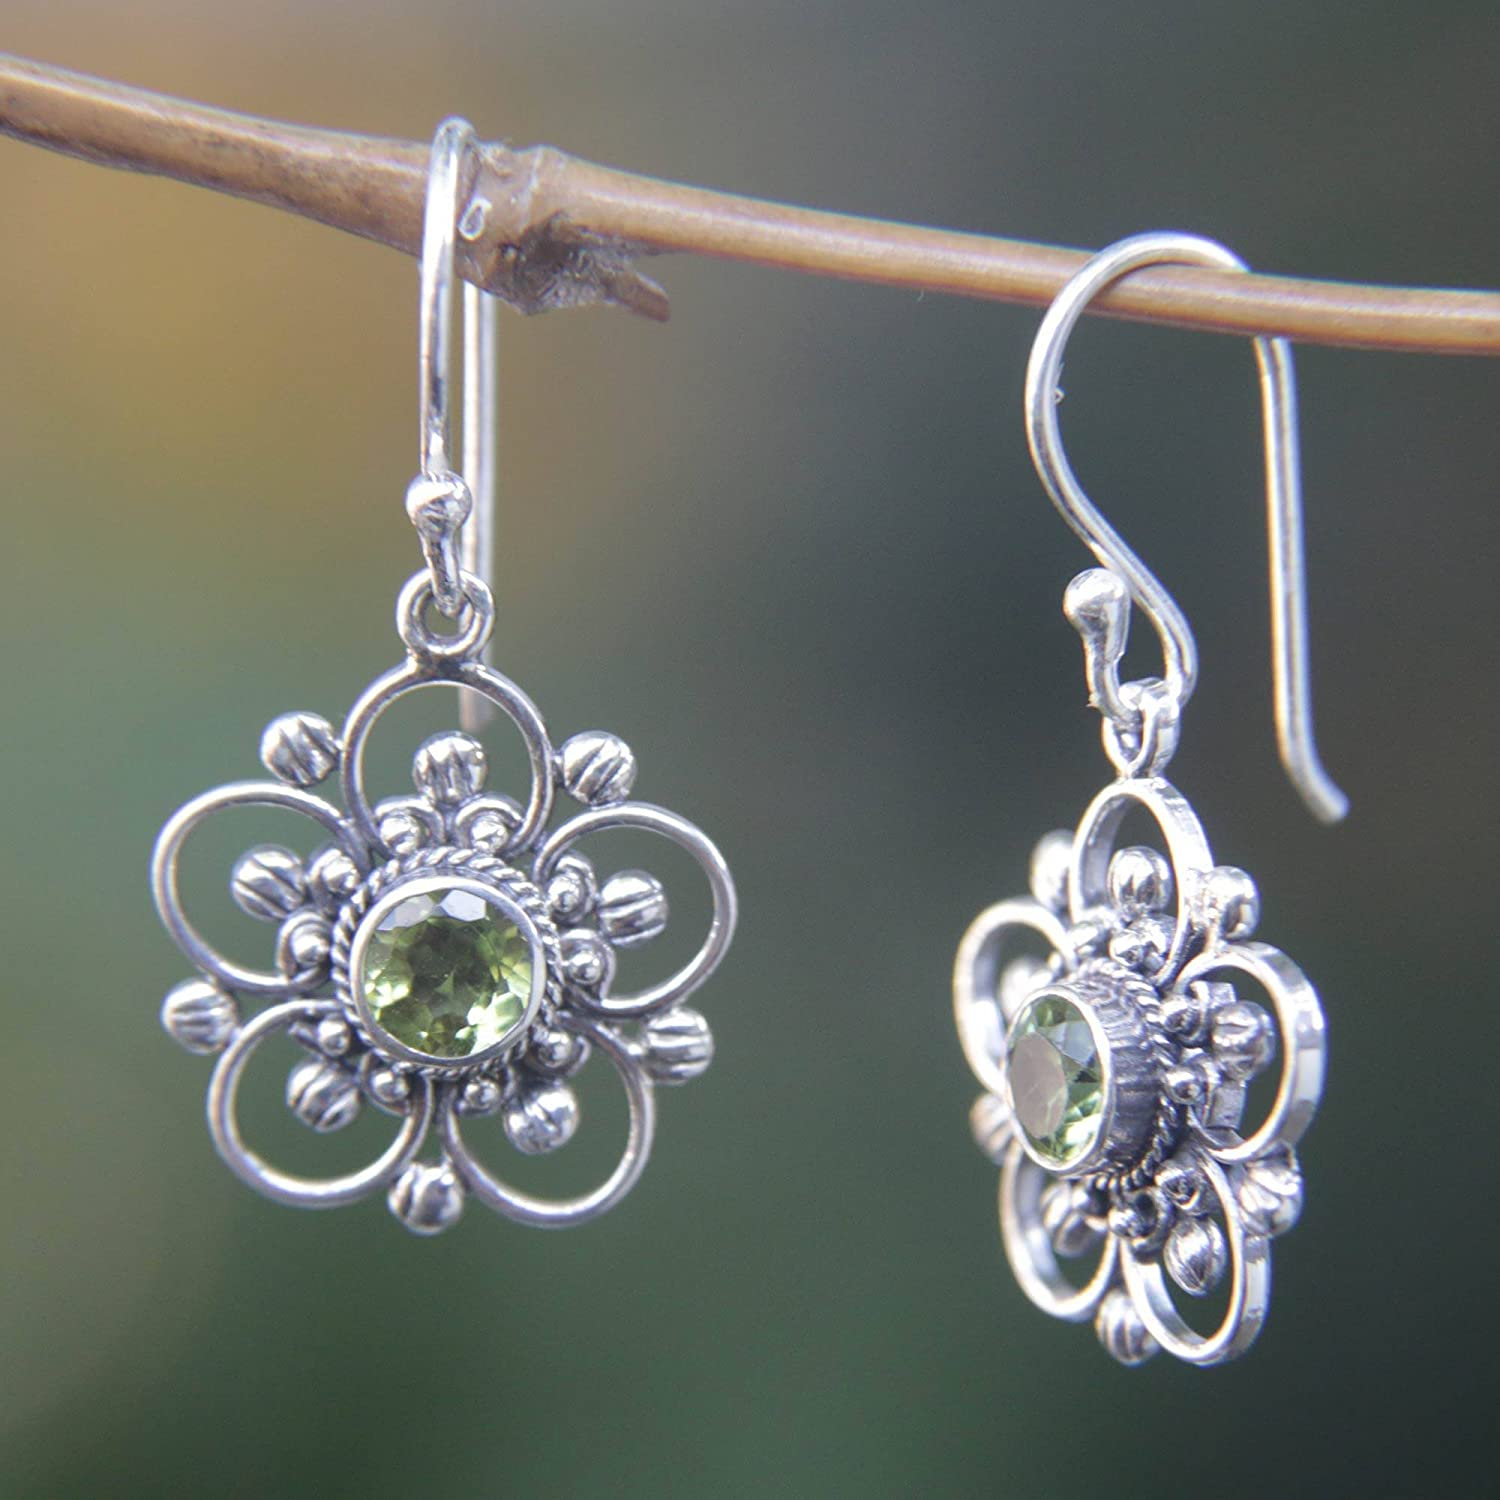 NOVICA 925 Sterling Silver and Peridot Flower Dangle Earrings, Nature s Gift